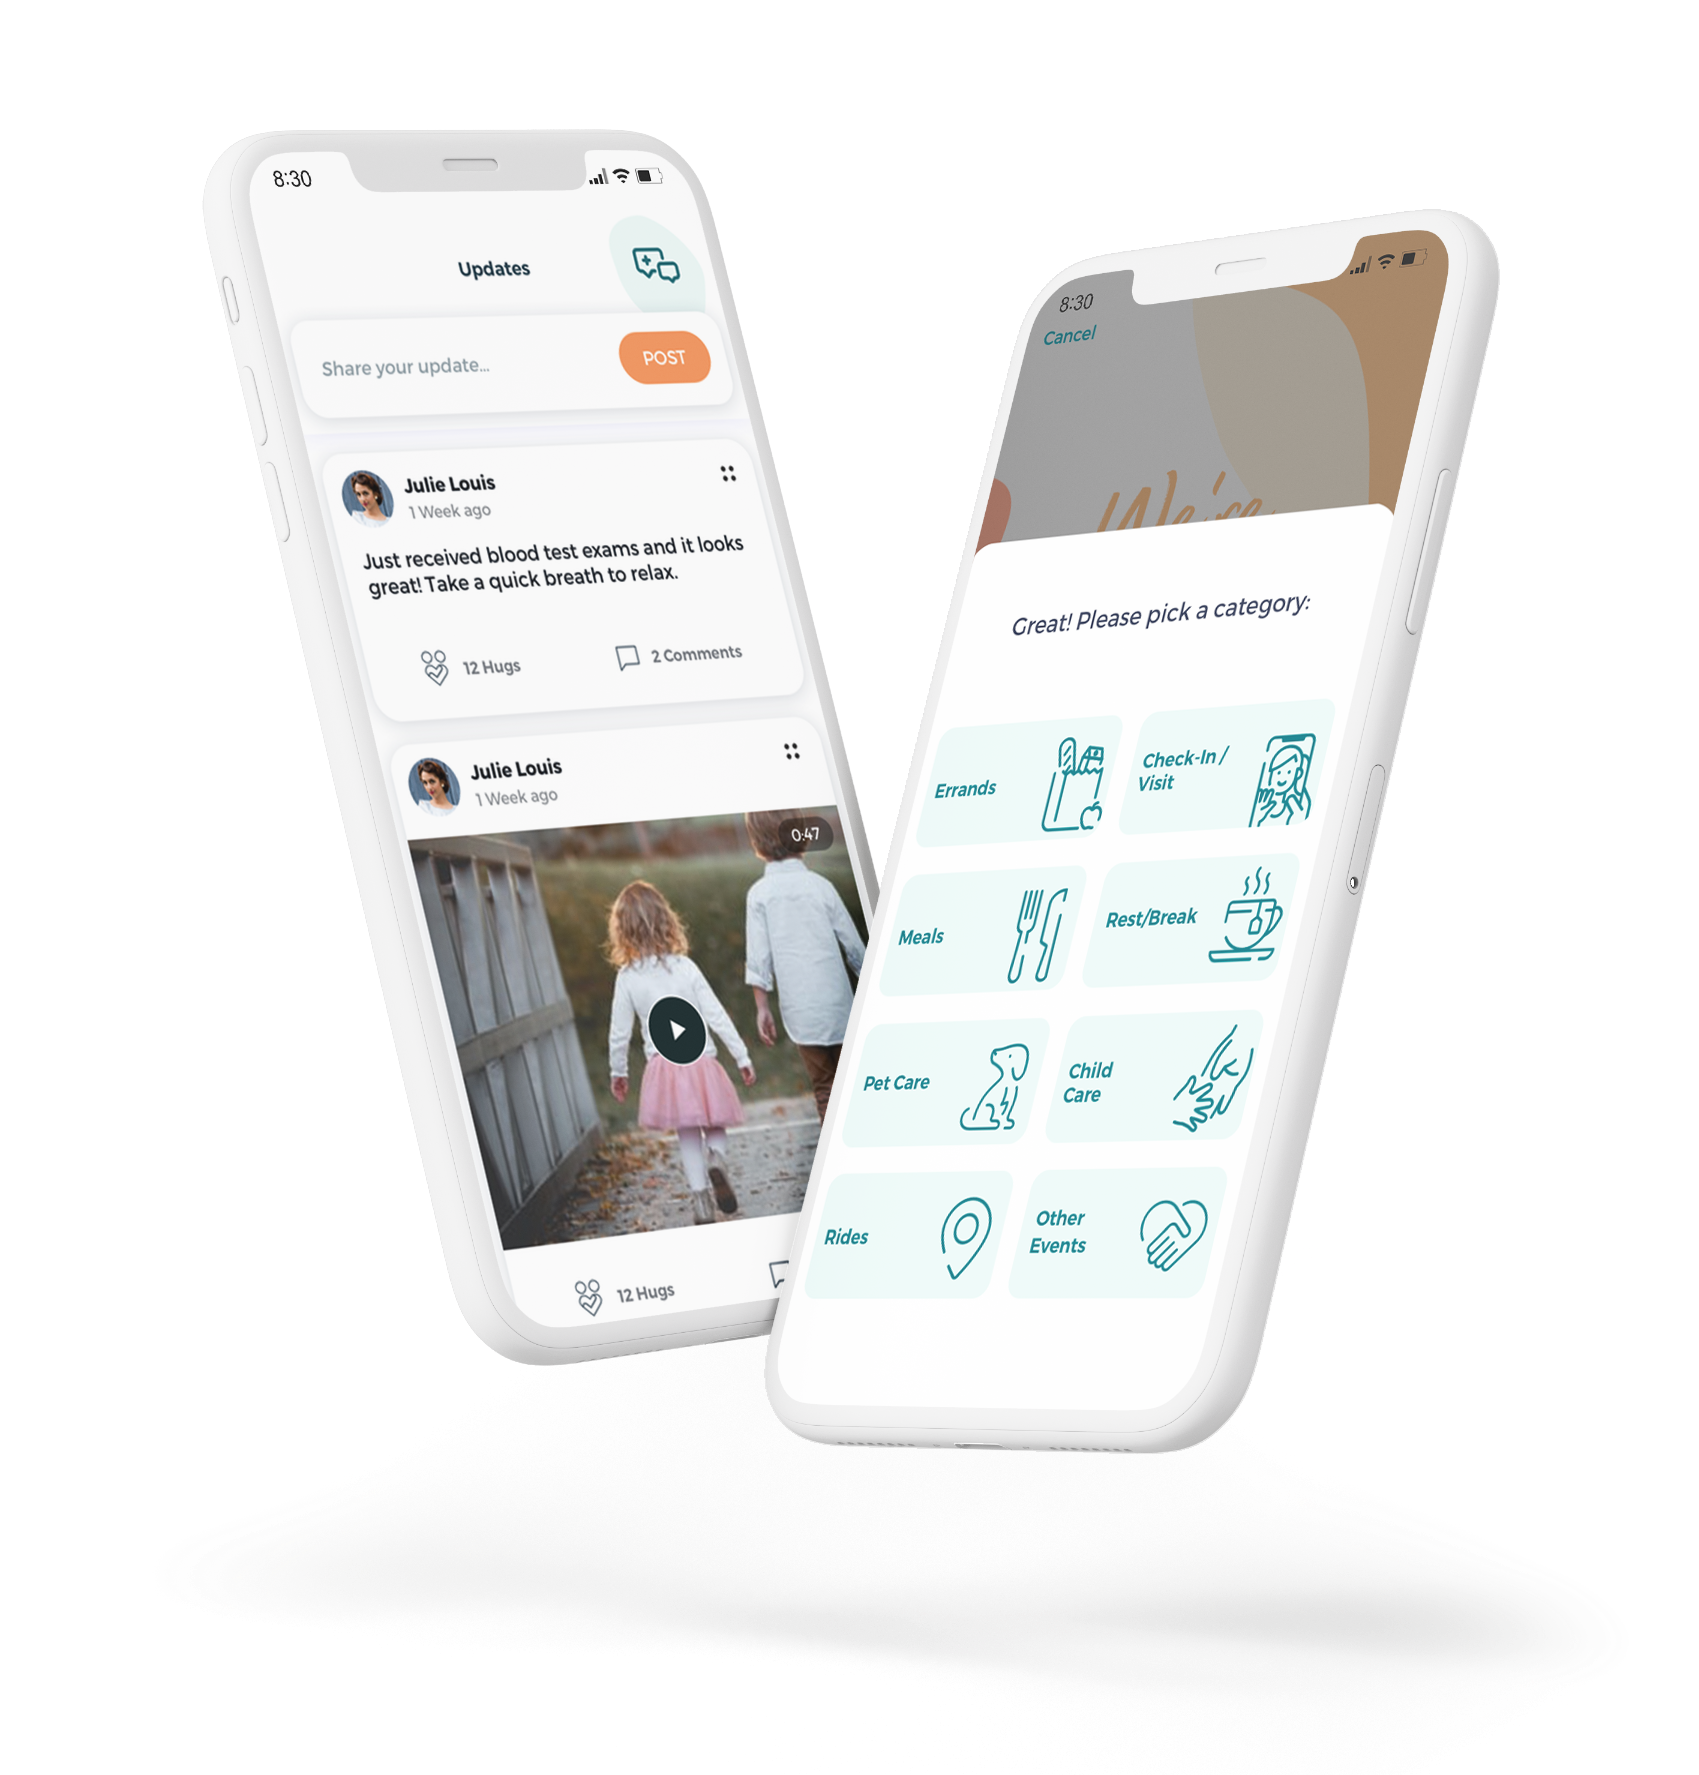 New features that mobilize care - with even more support!